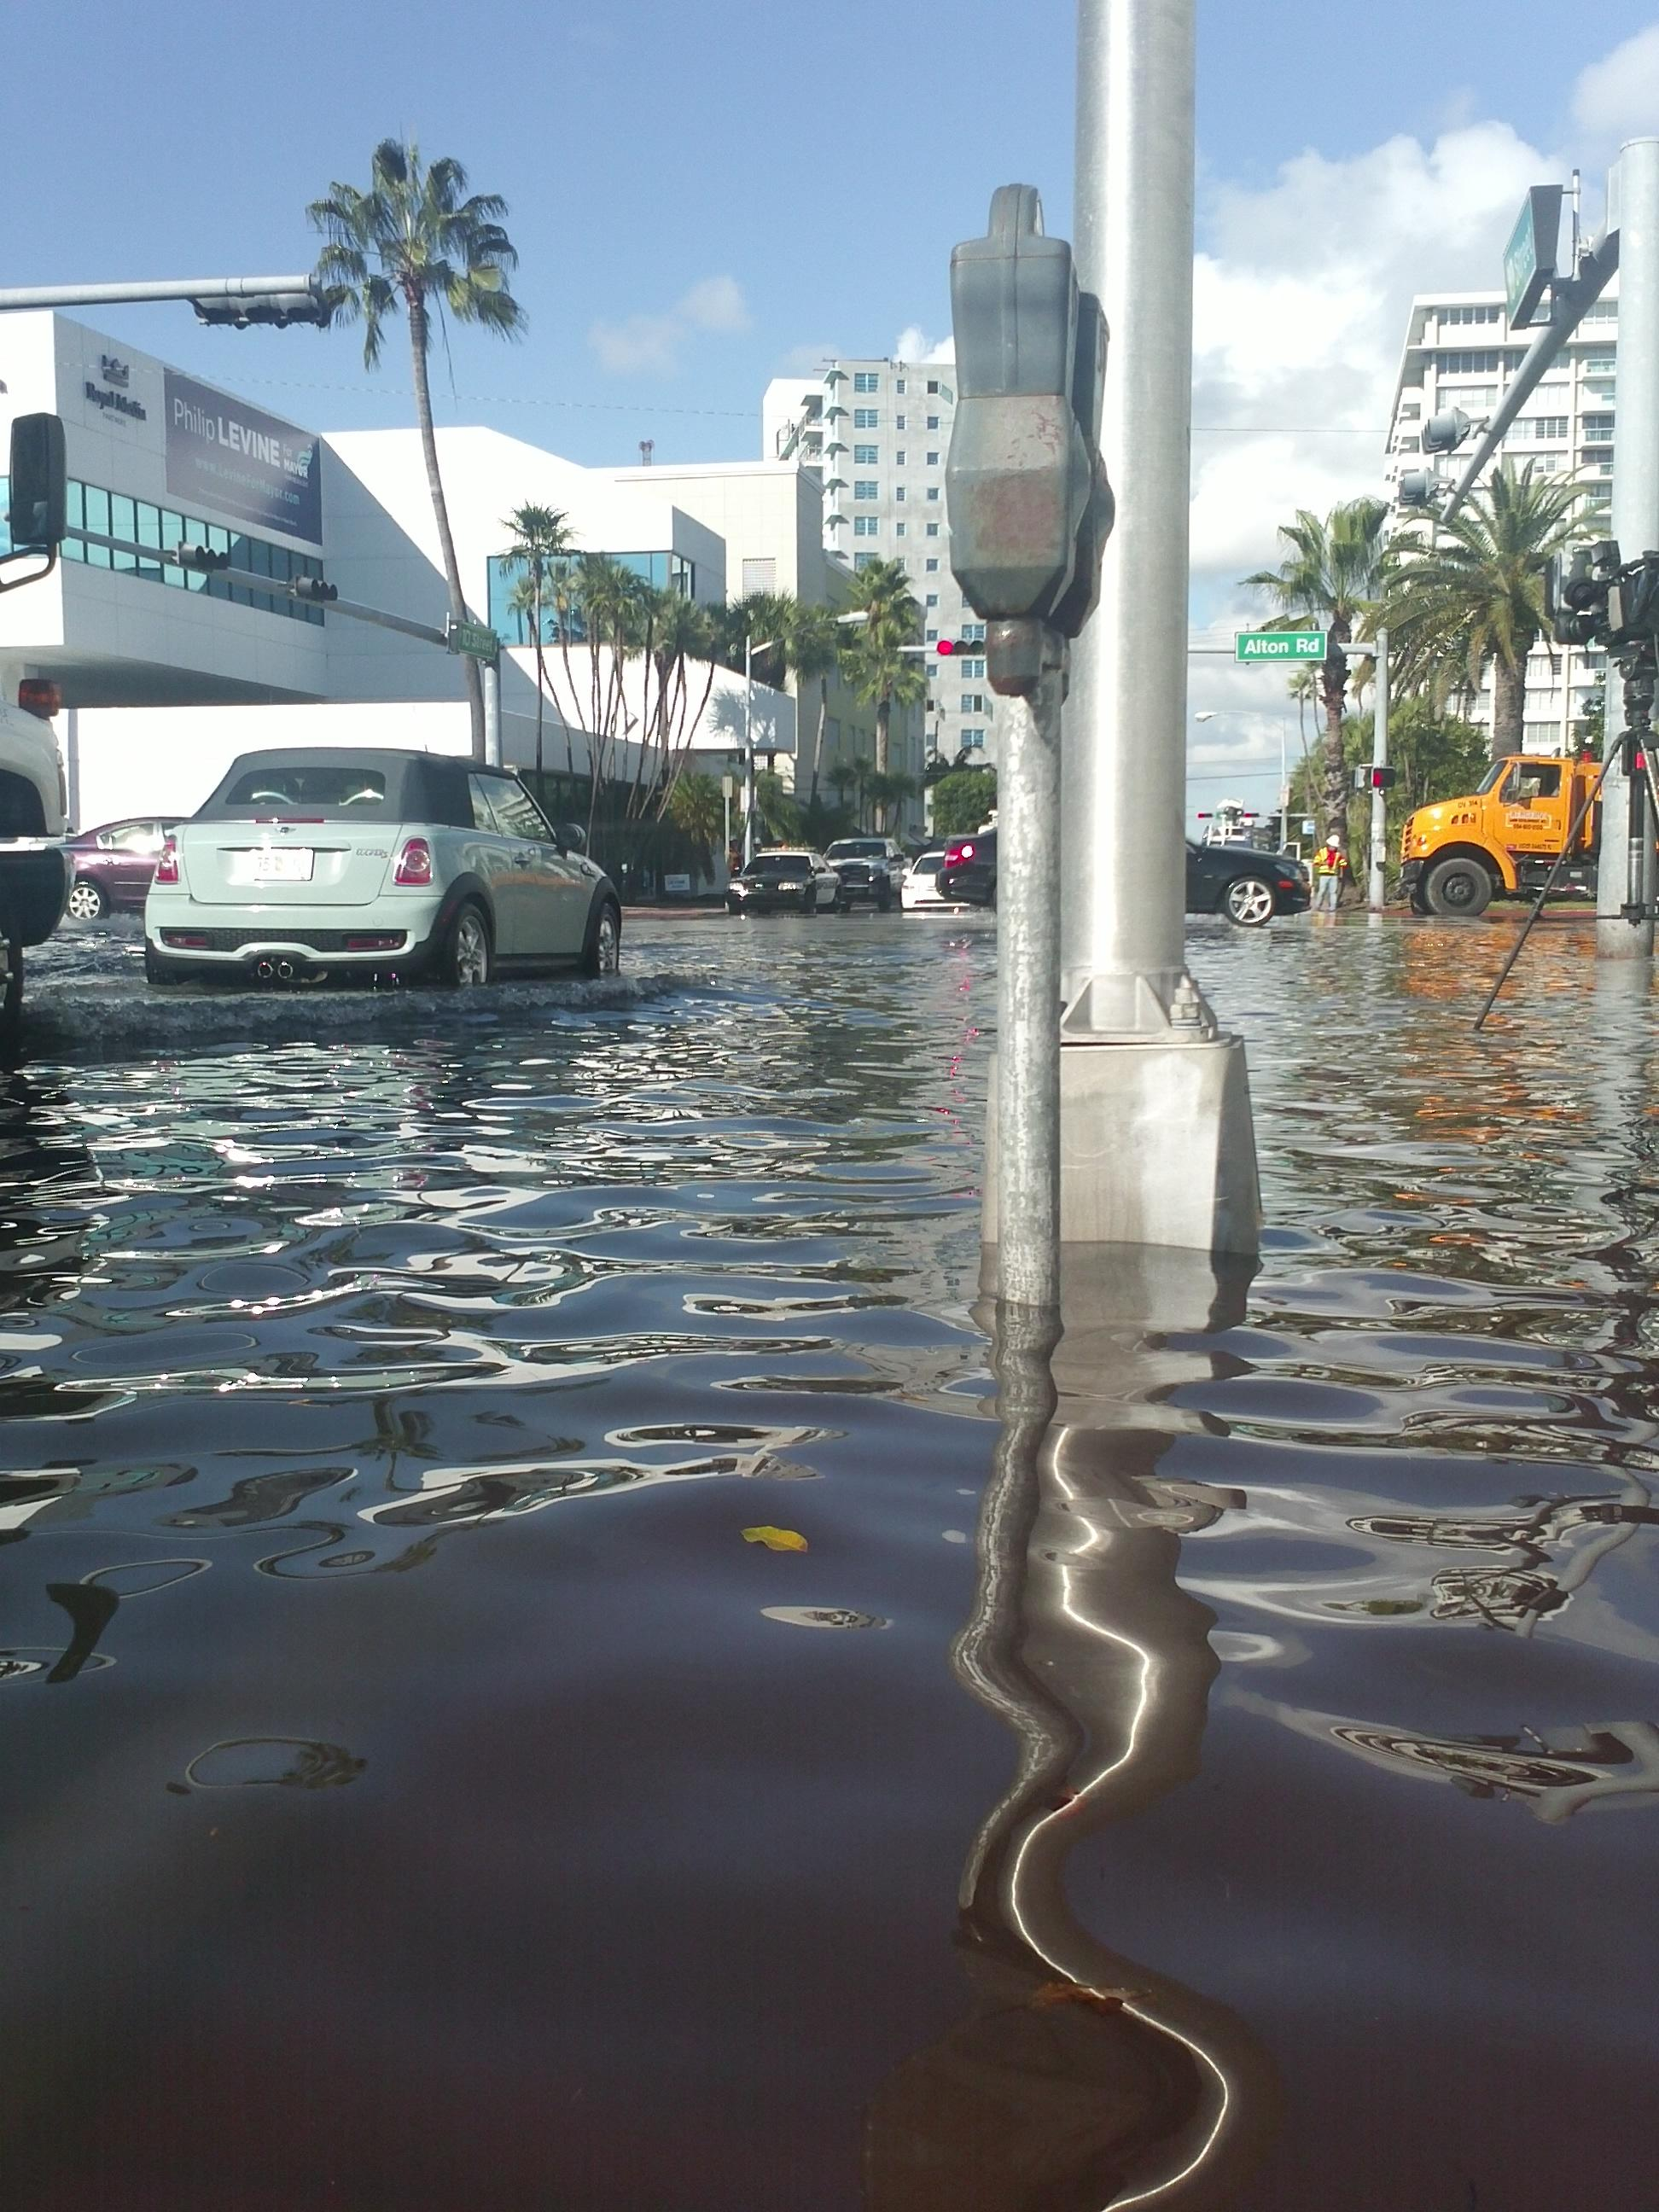 For A Future Glimpse Of SeaLevel Rise Check Out The King Tide WLRN - How to check sea level